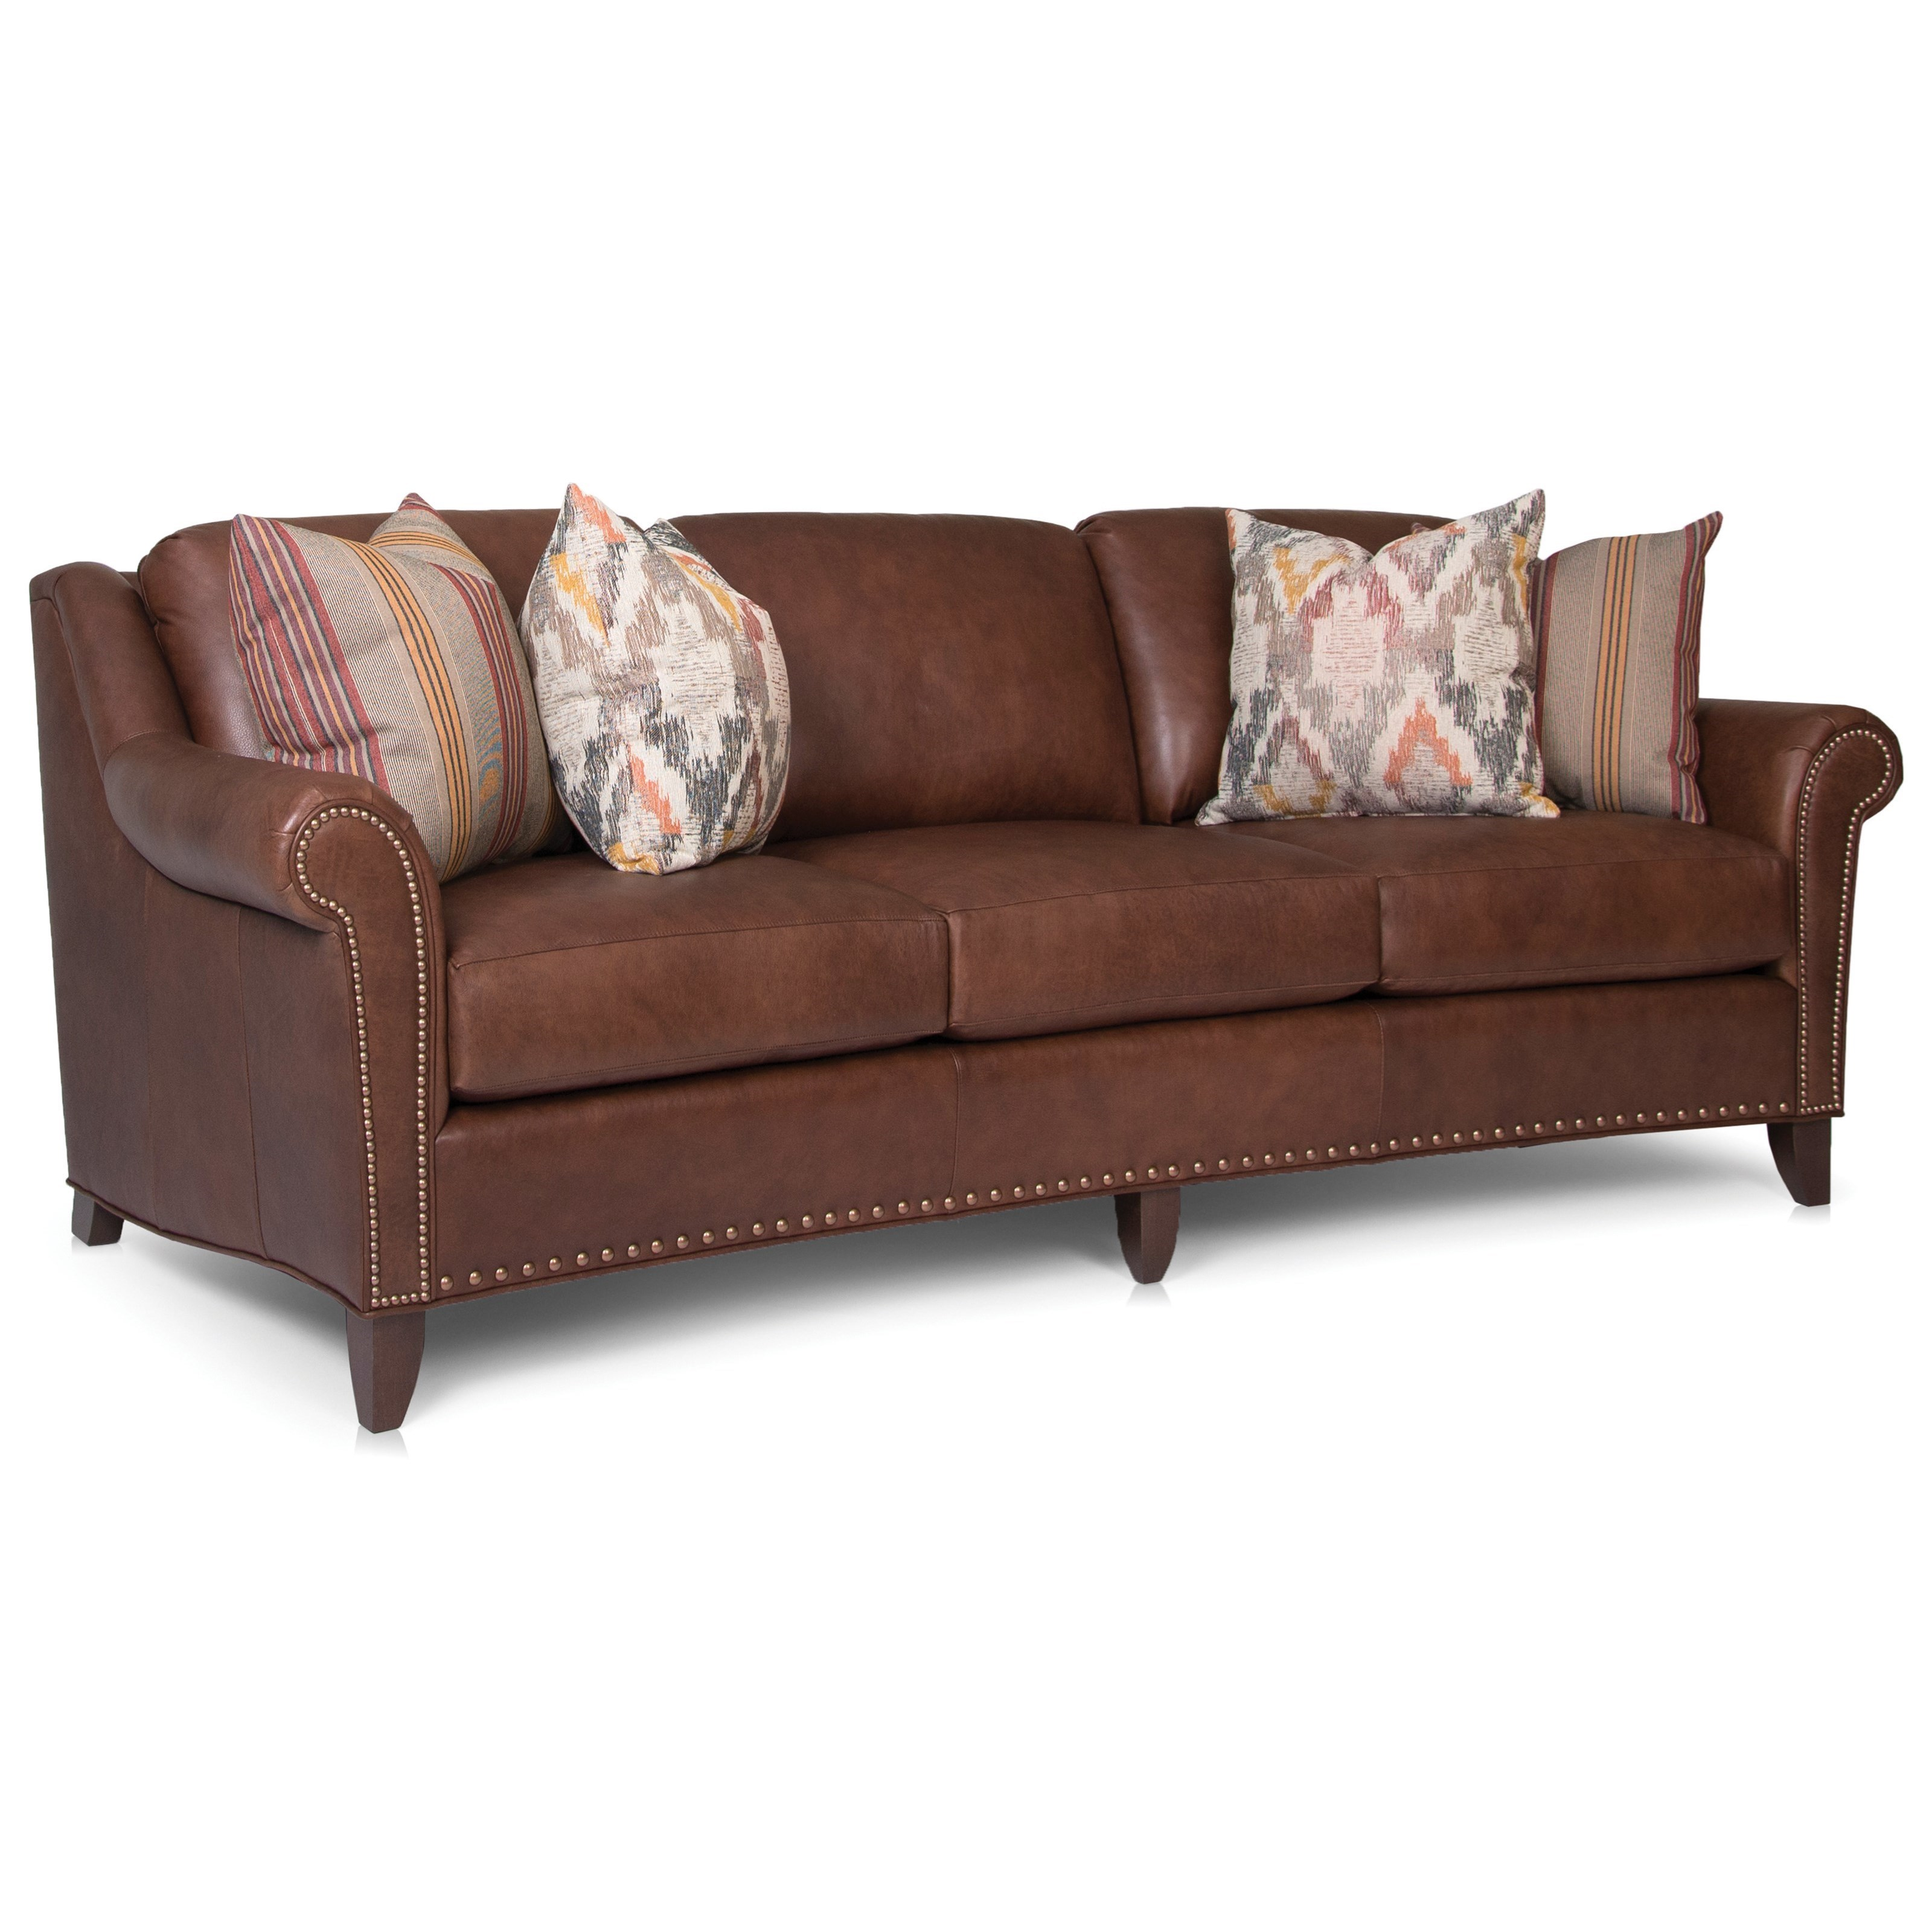 249 Large Sofa by Smith Brothers at Story & Lee Furniture